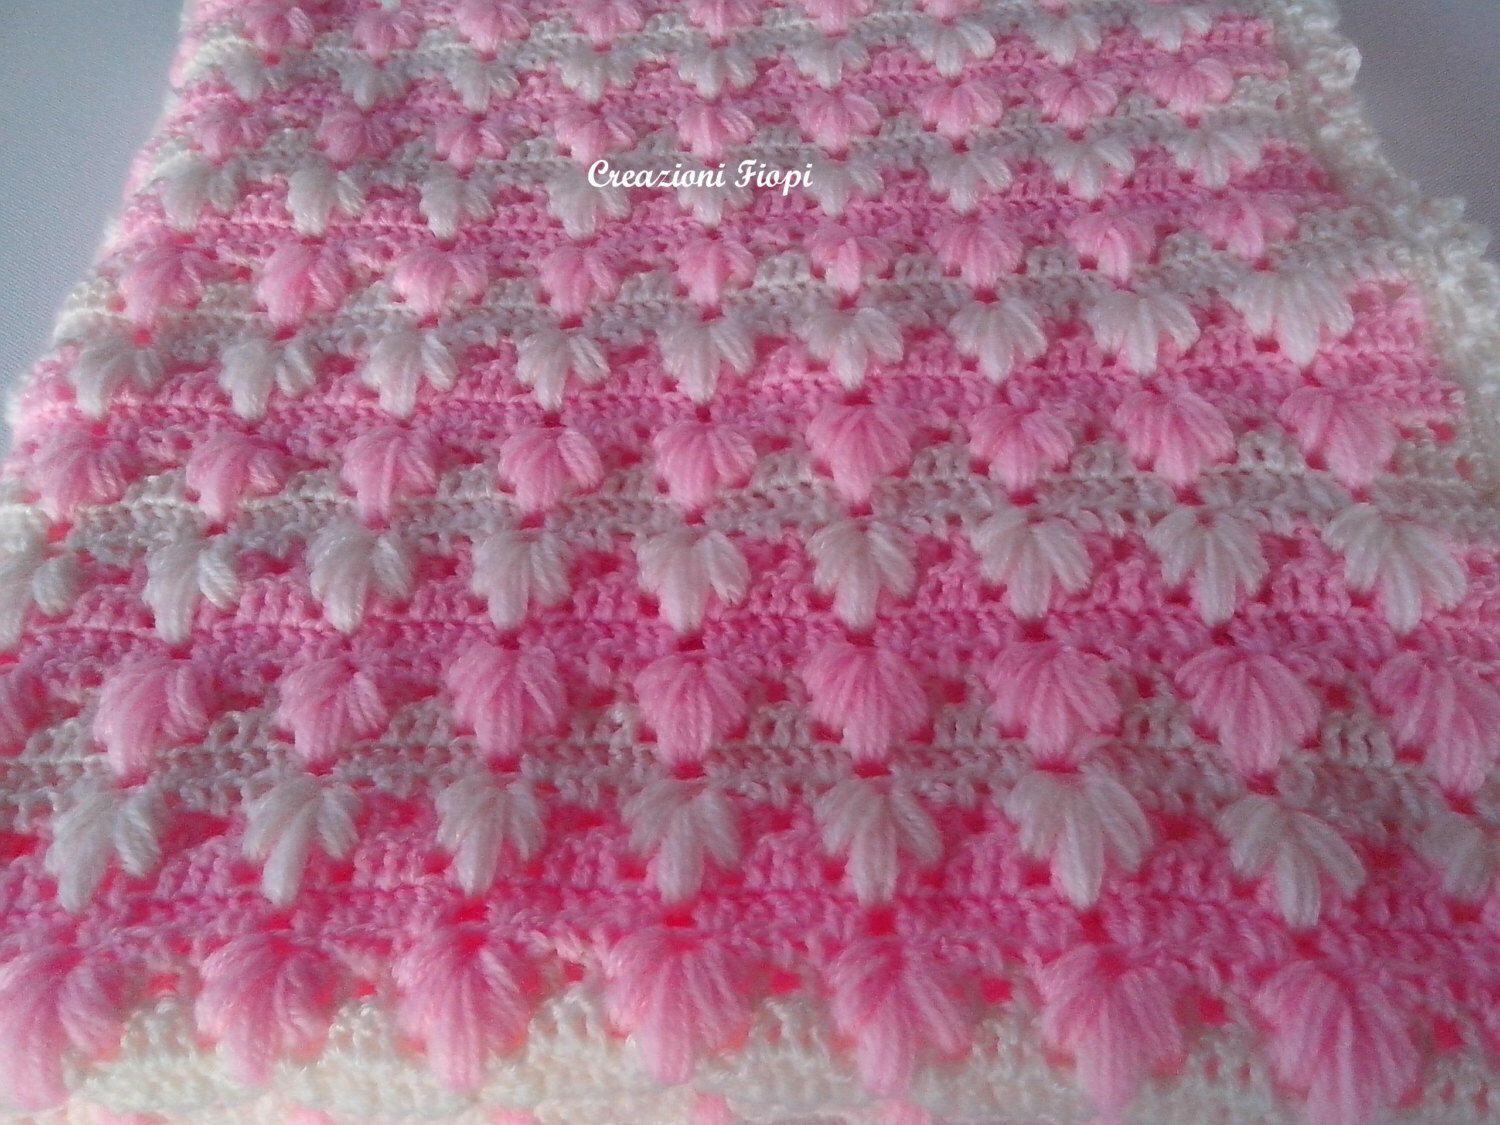 Crochet pattern baby blanket pattern puff aloe stitch tutorial crochet pattern baby blanket pattern puff aloe stitch tutorial instant download pattern 141 permission to sell finished items bankloansurffo Gallery